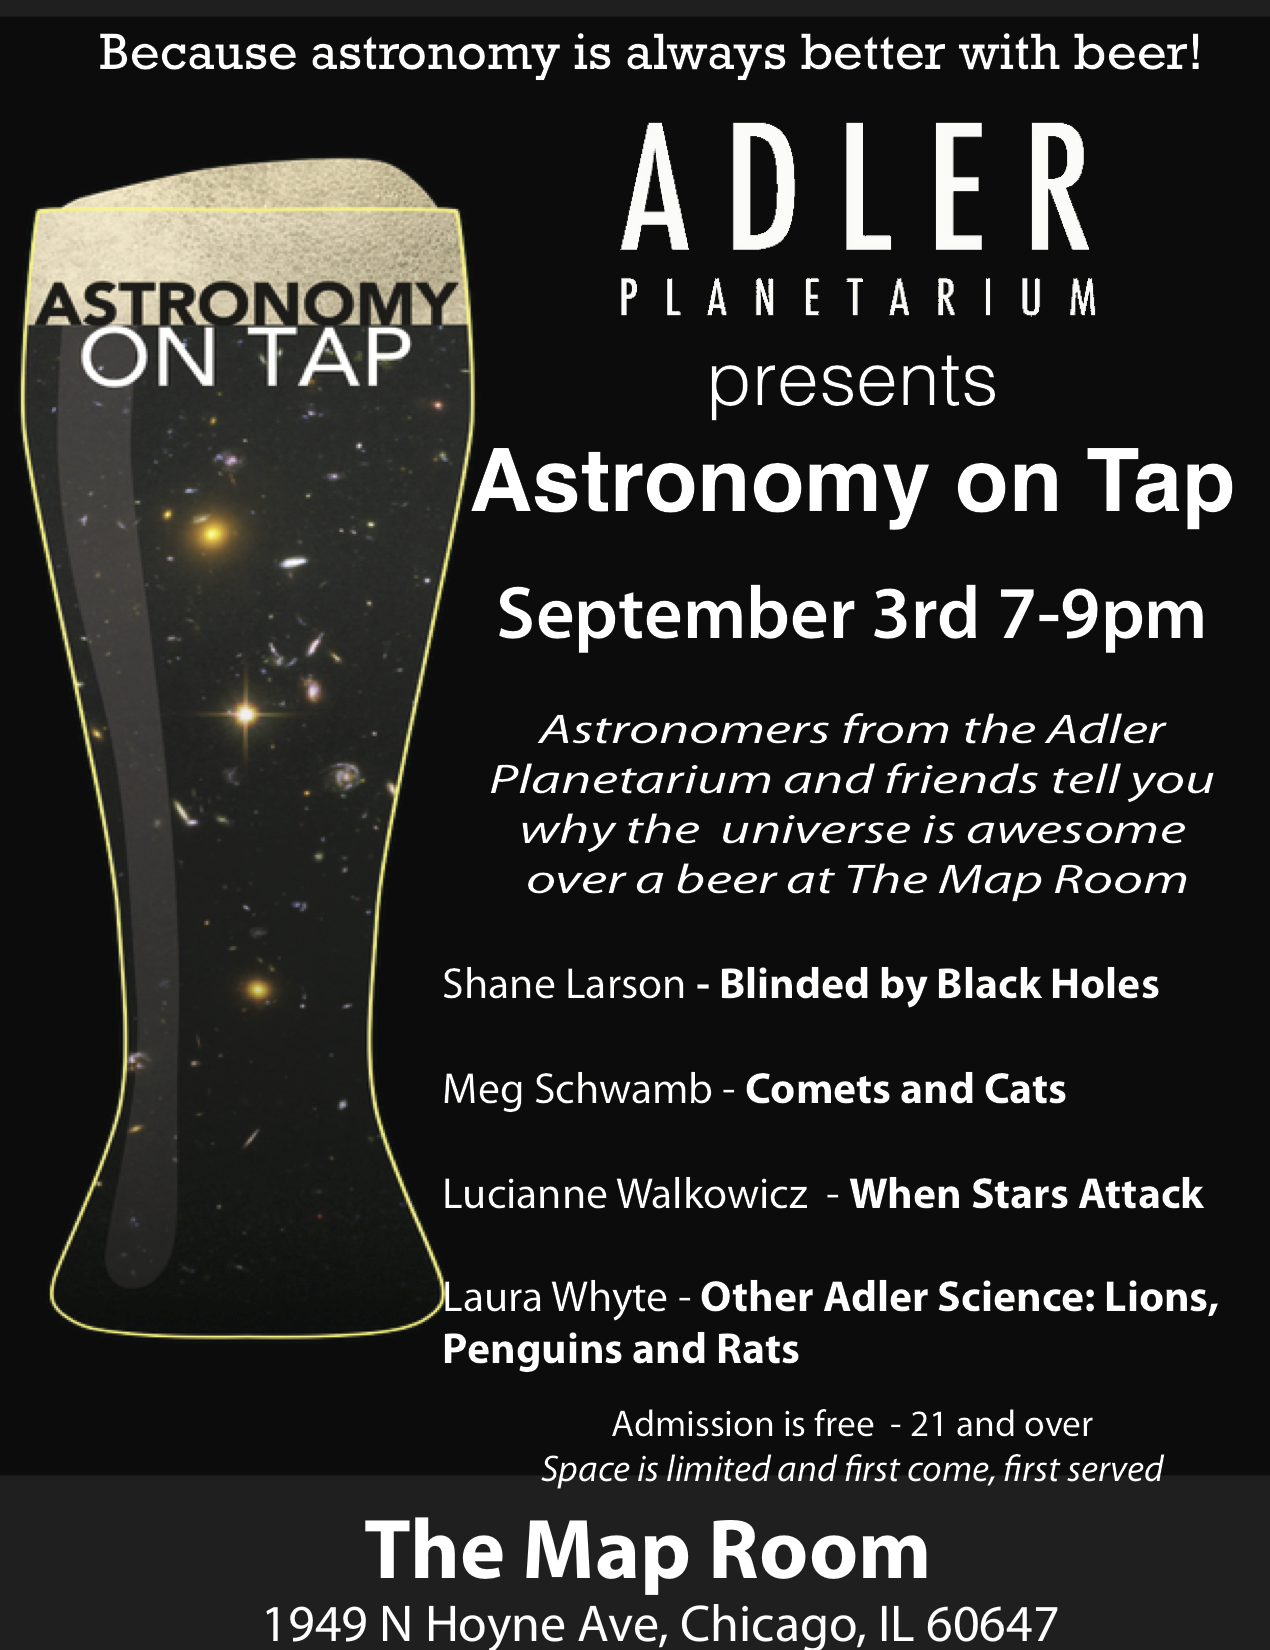 Adler Planetarium Presents Astronomy On Tap September